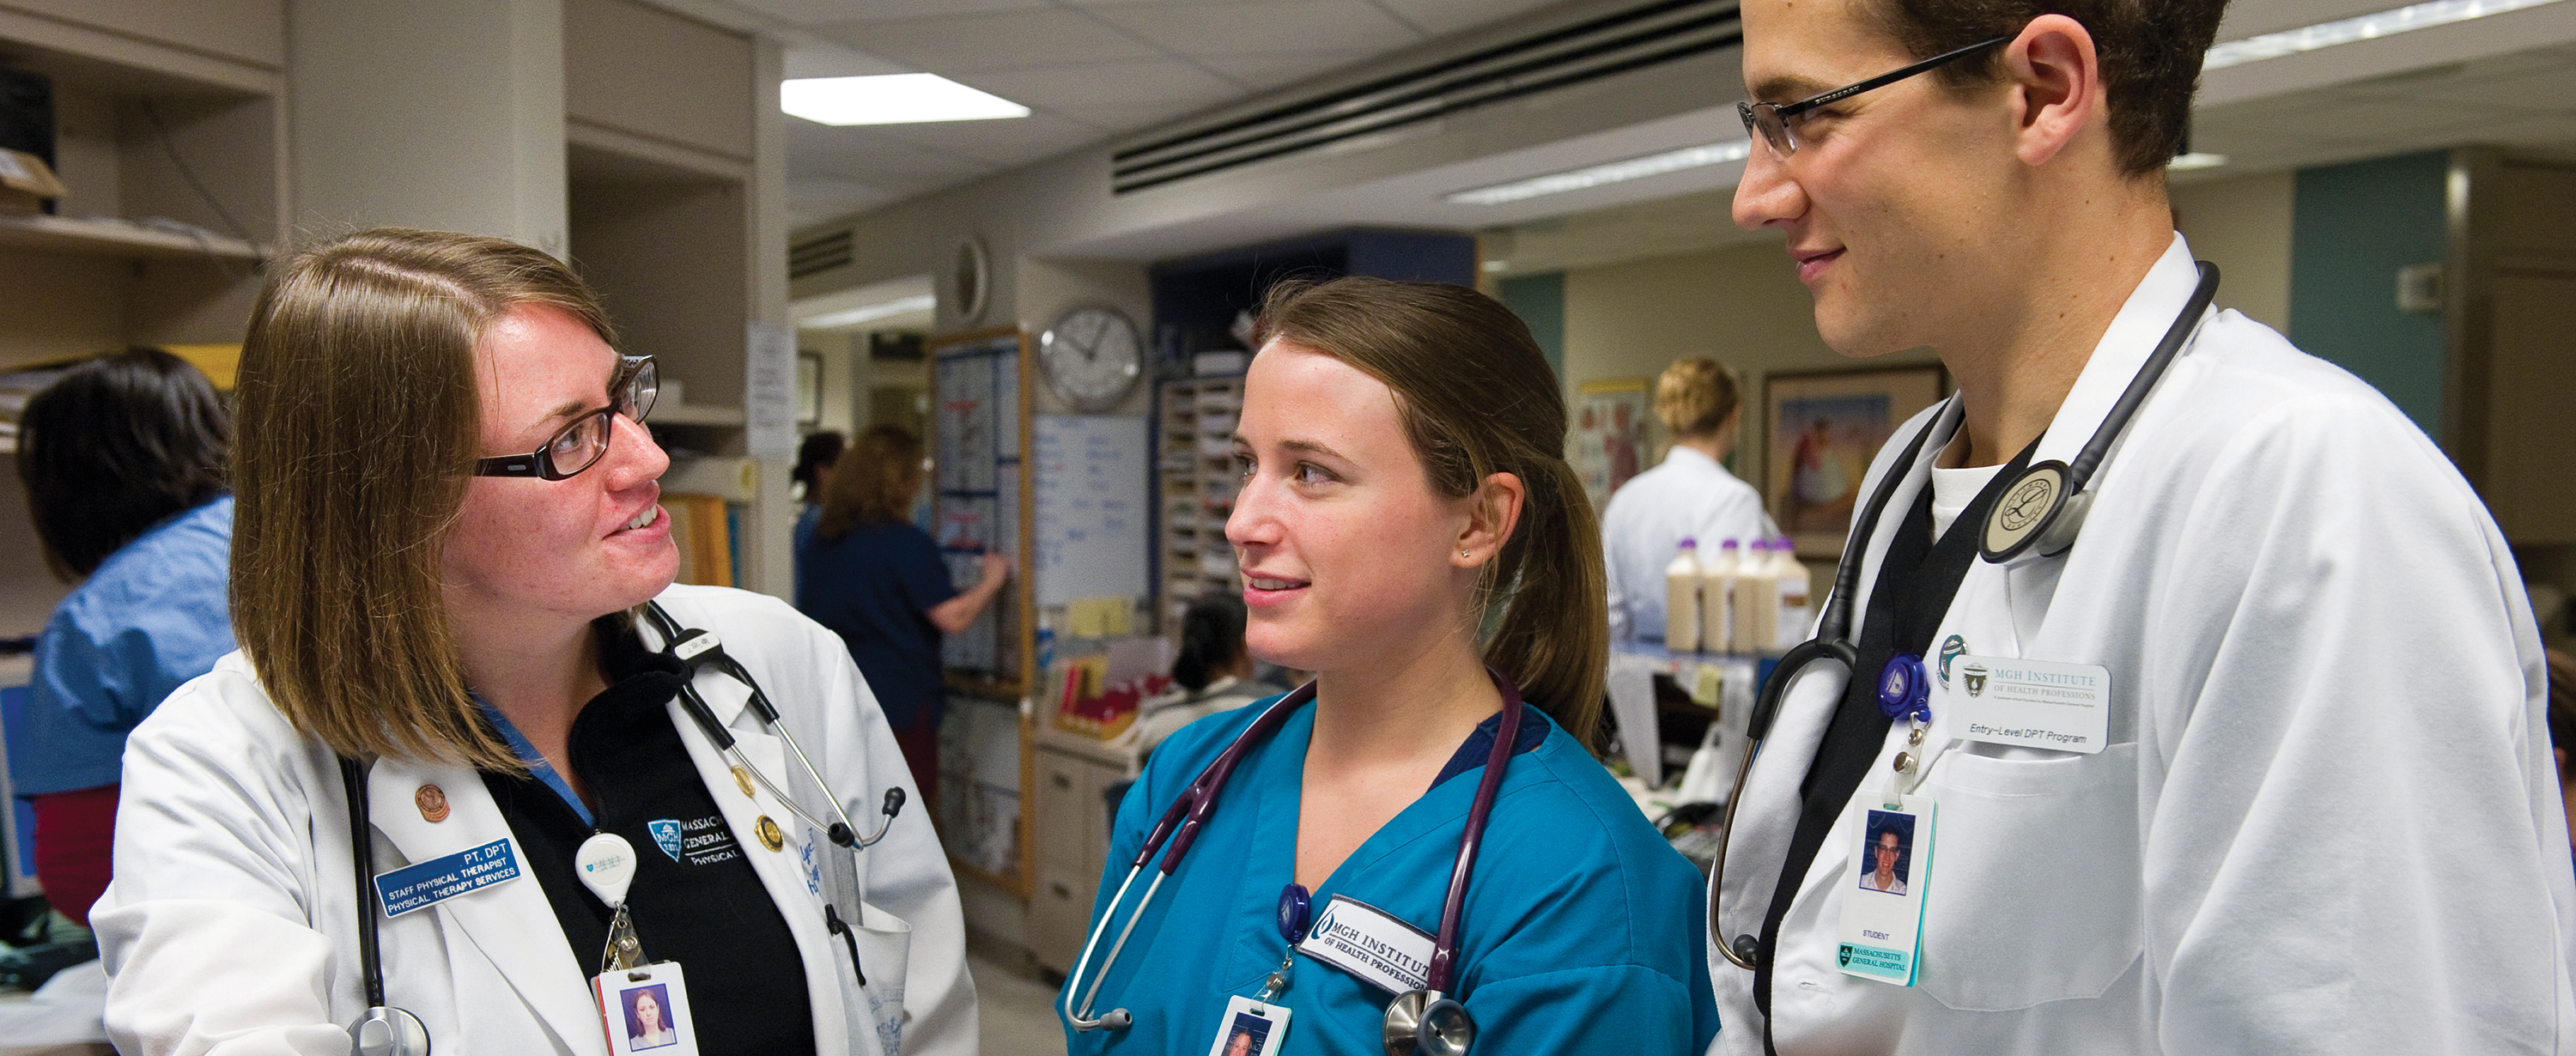 PT clinical supervisor at Mass General Hospital working with two MGH Institute students